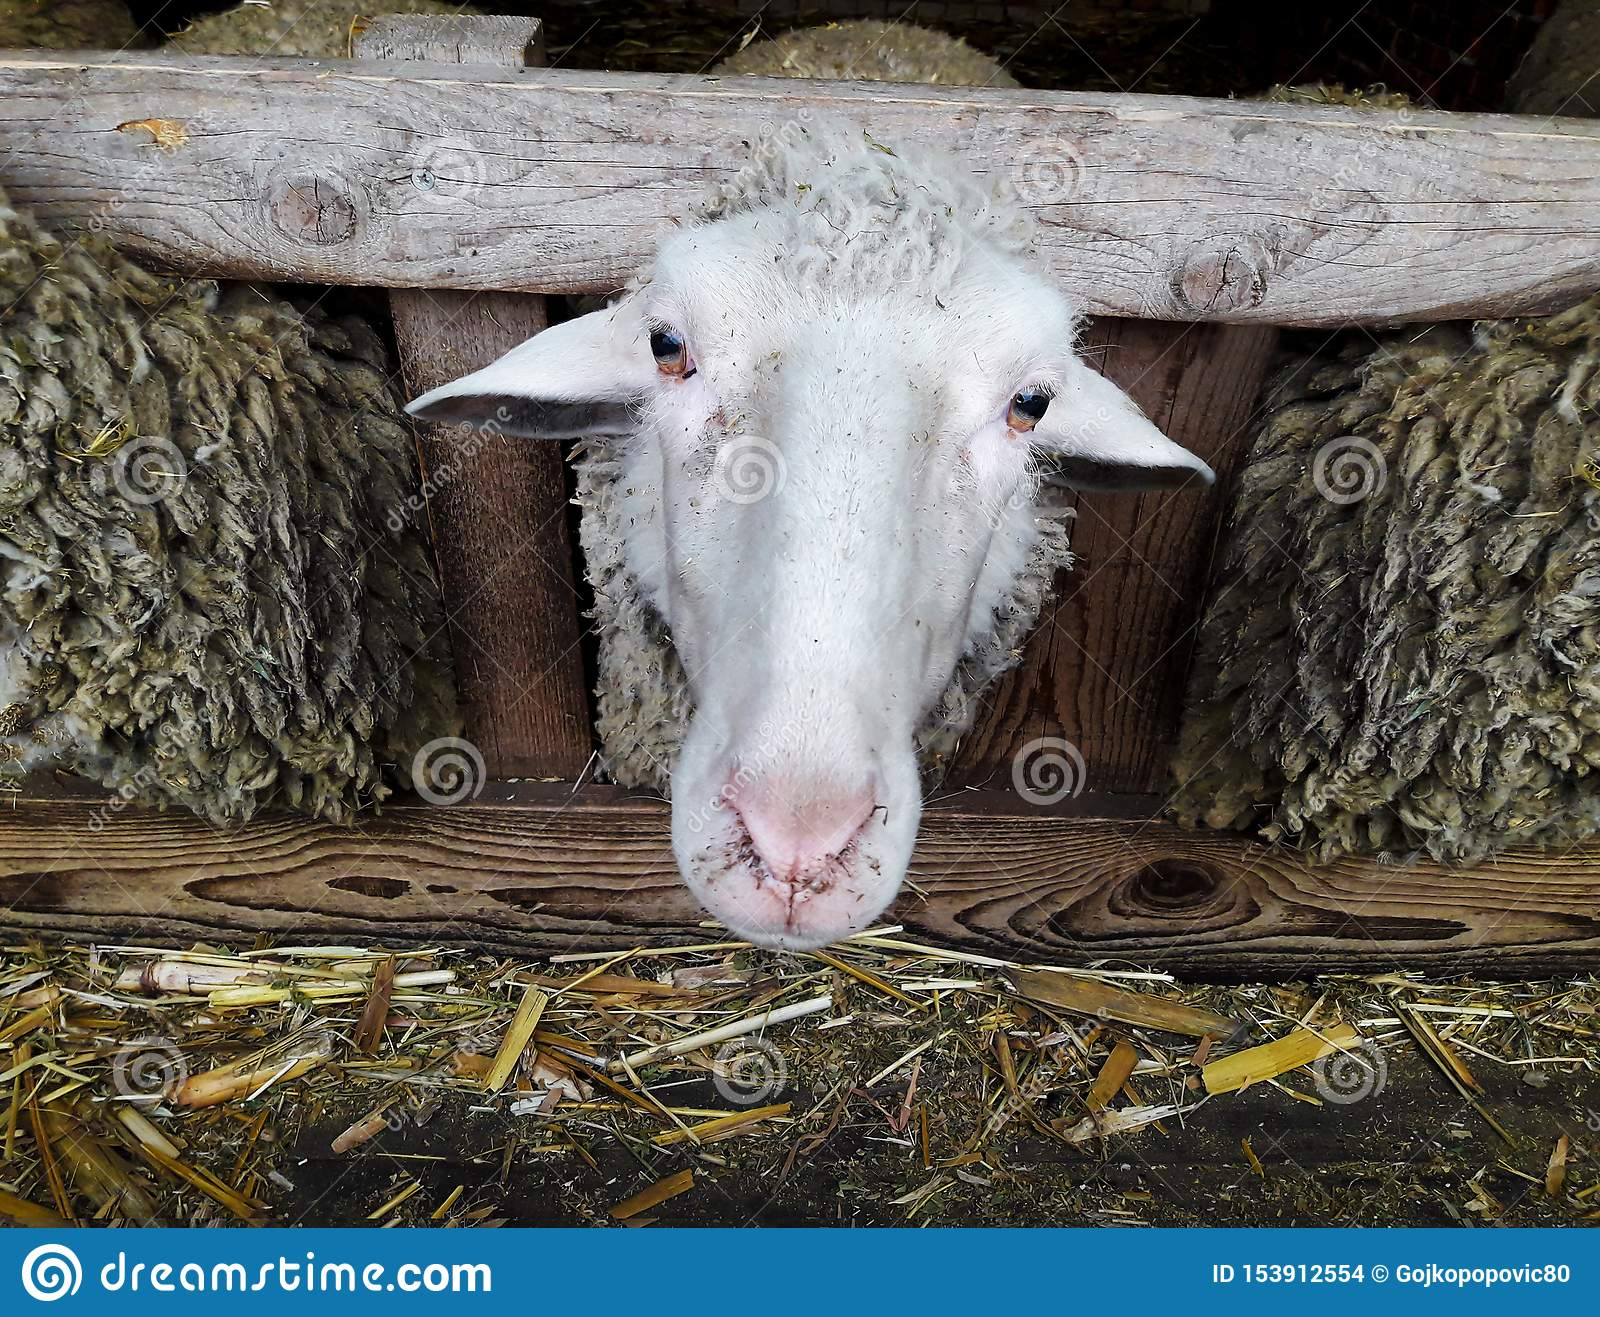 The Head of the Sheep